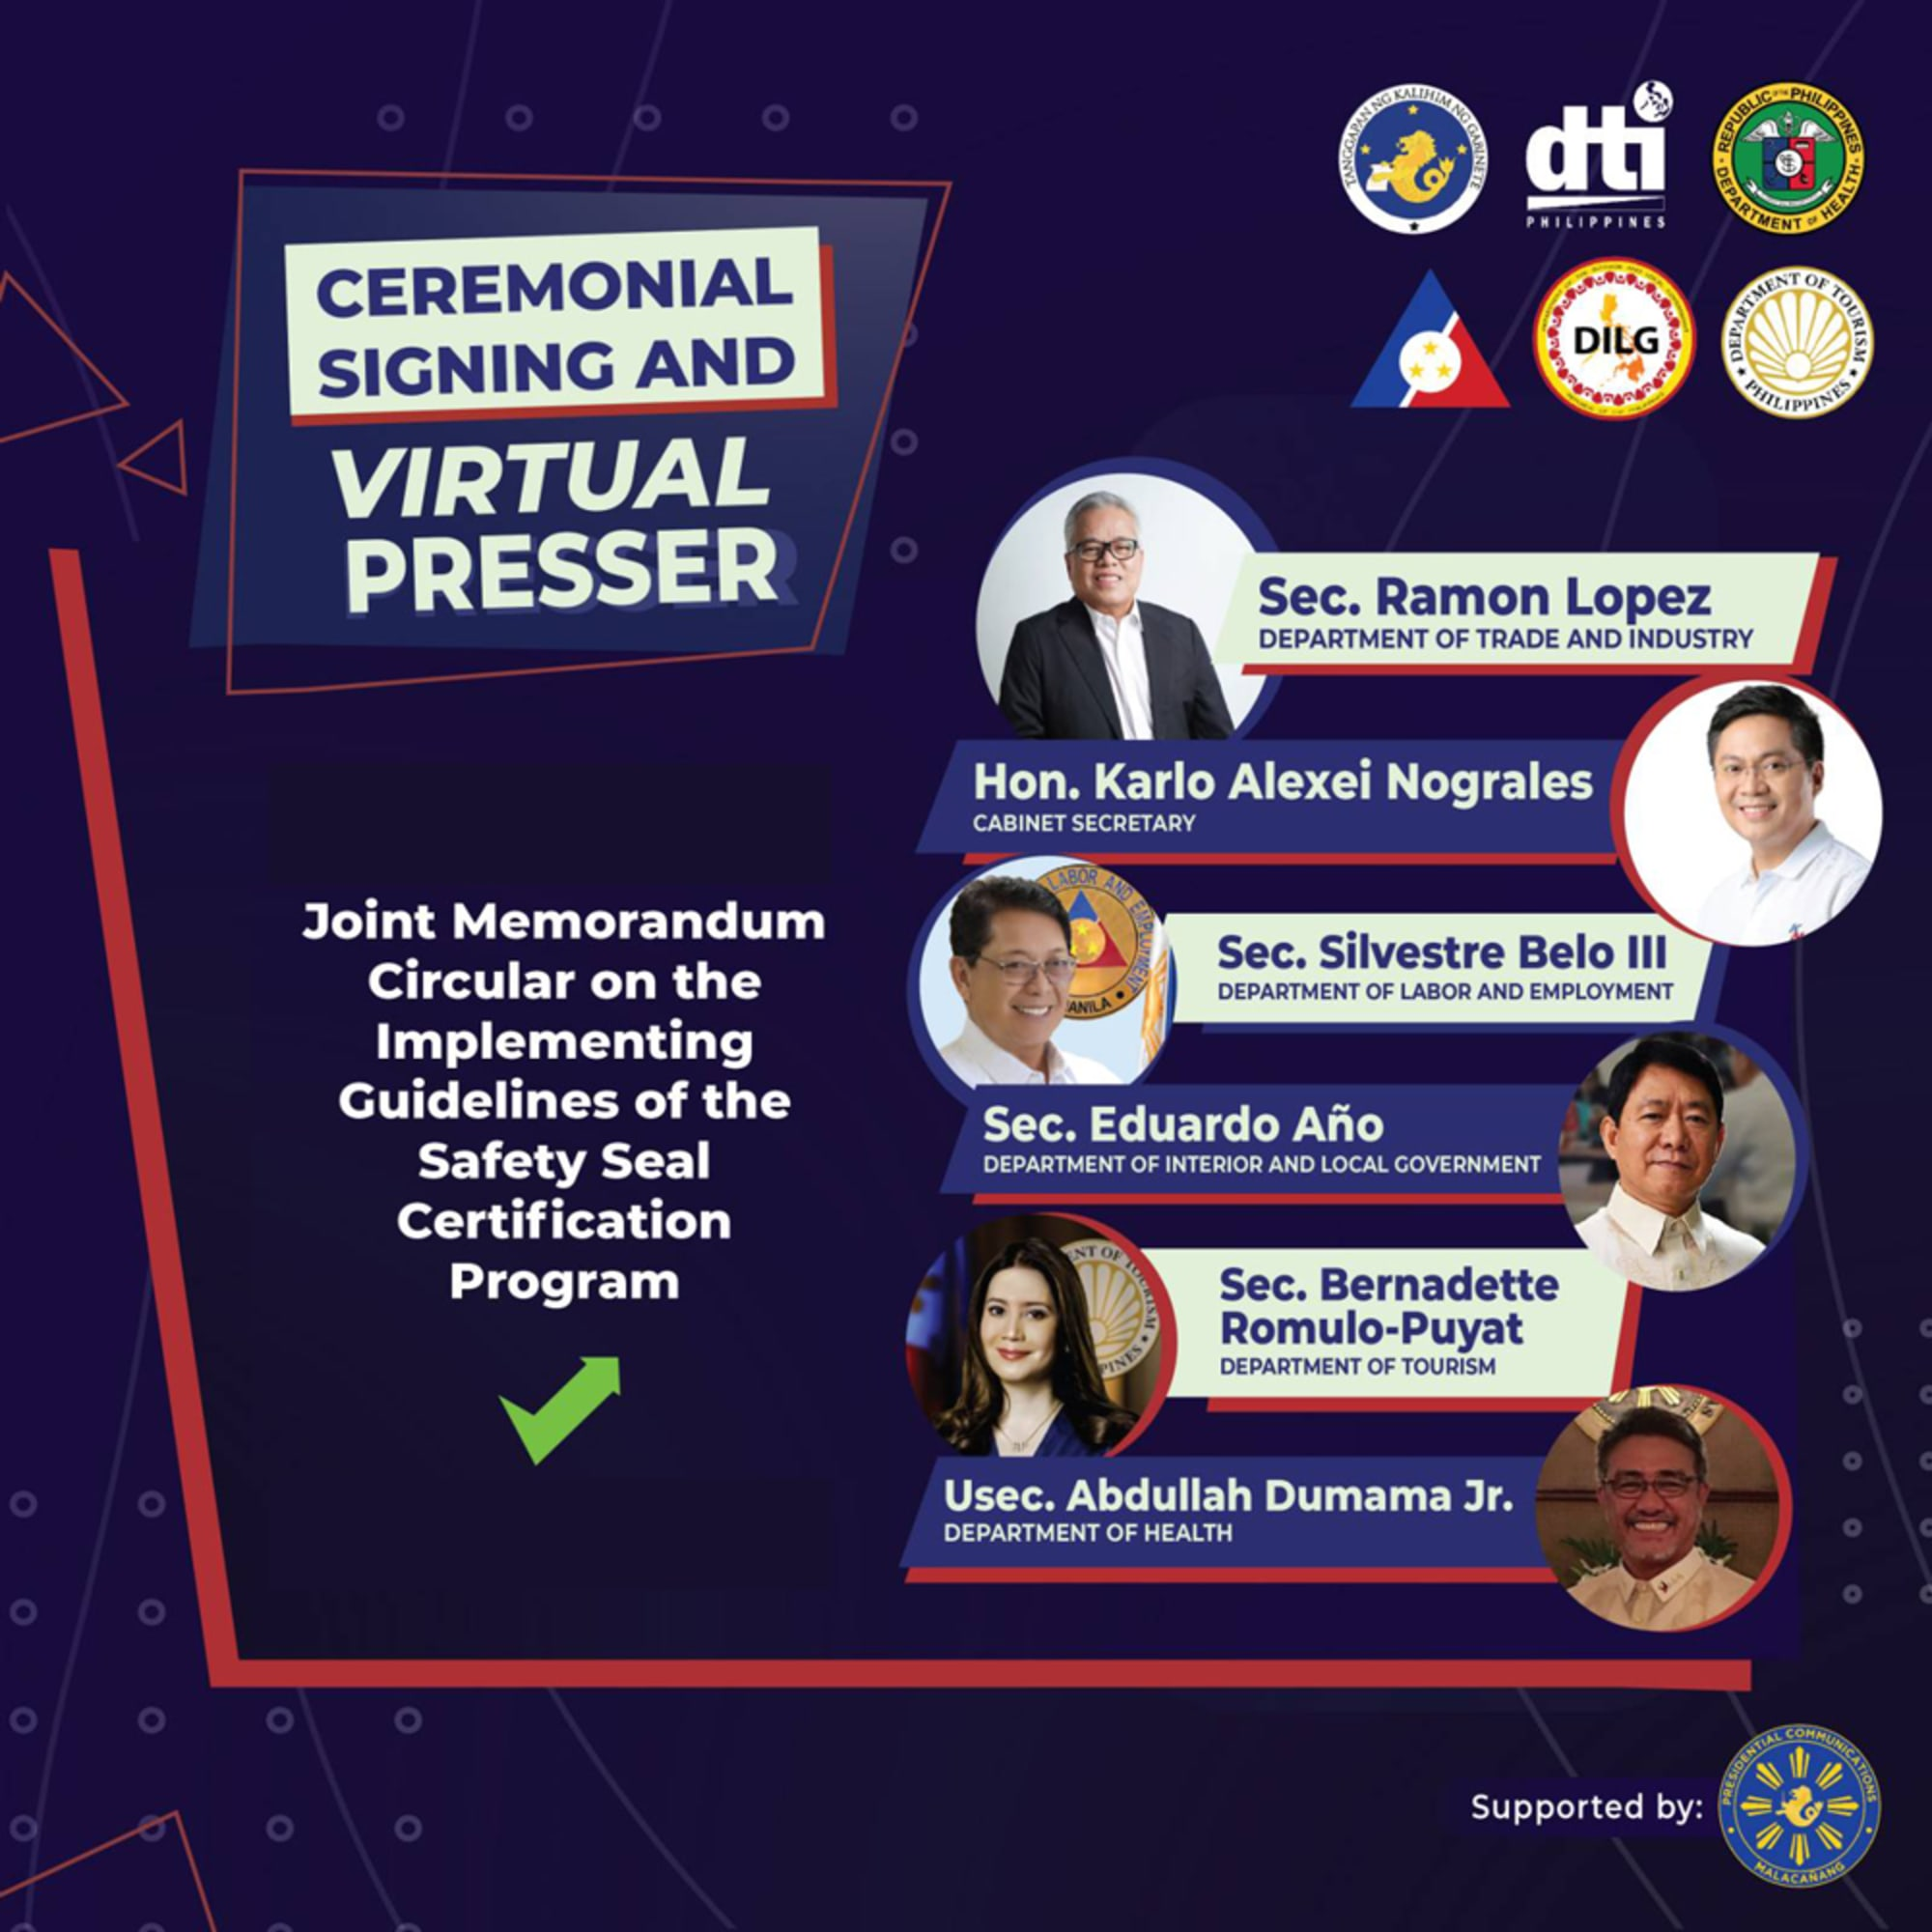 DOH-DOLE-DOT-DILG-DTI Joint Memorandum Circular (JMC) Ceremonial Signing on Implementing Guidelines of the Safety Seal Certification Program